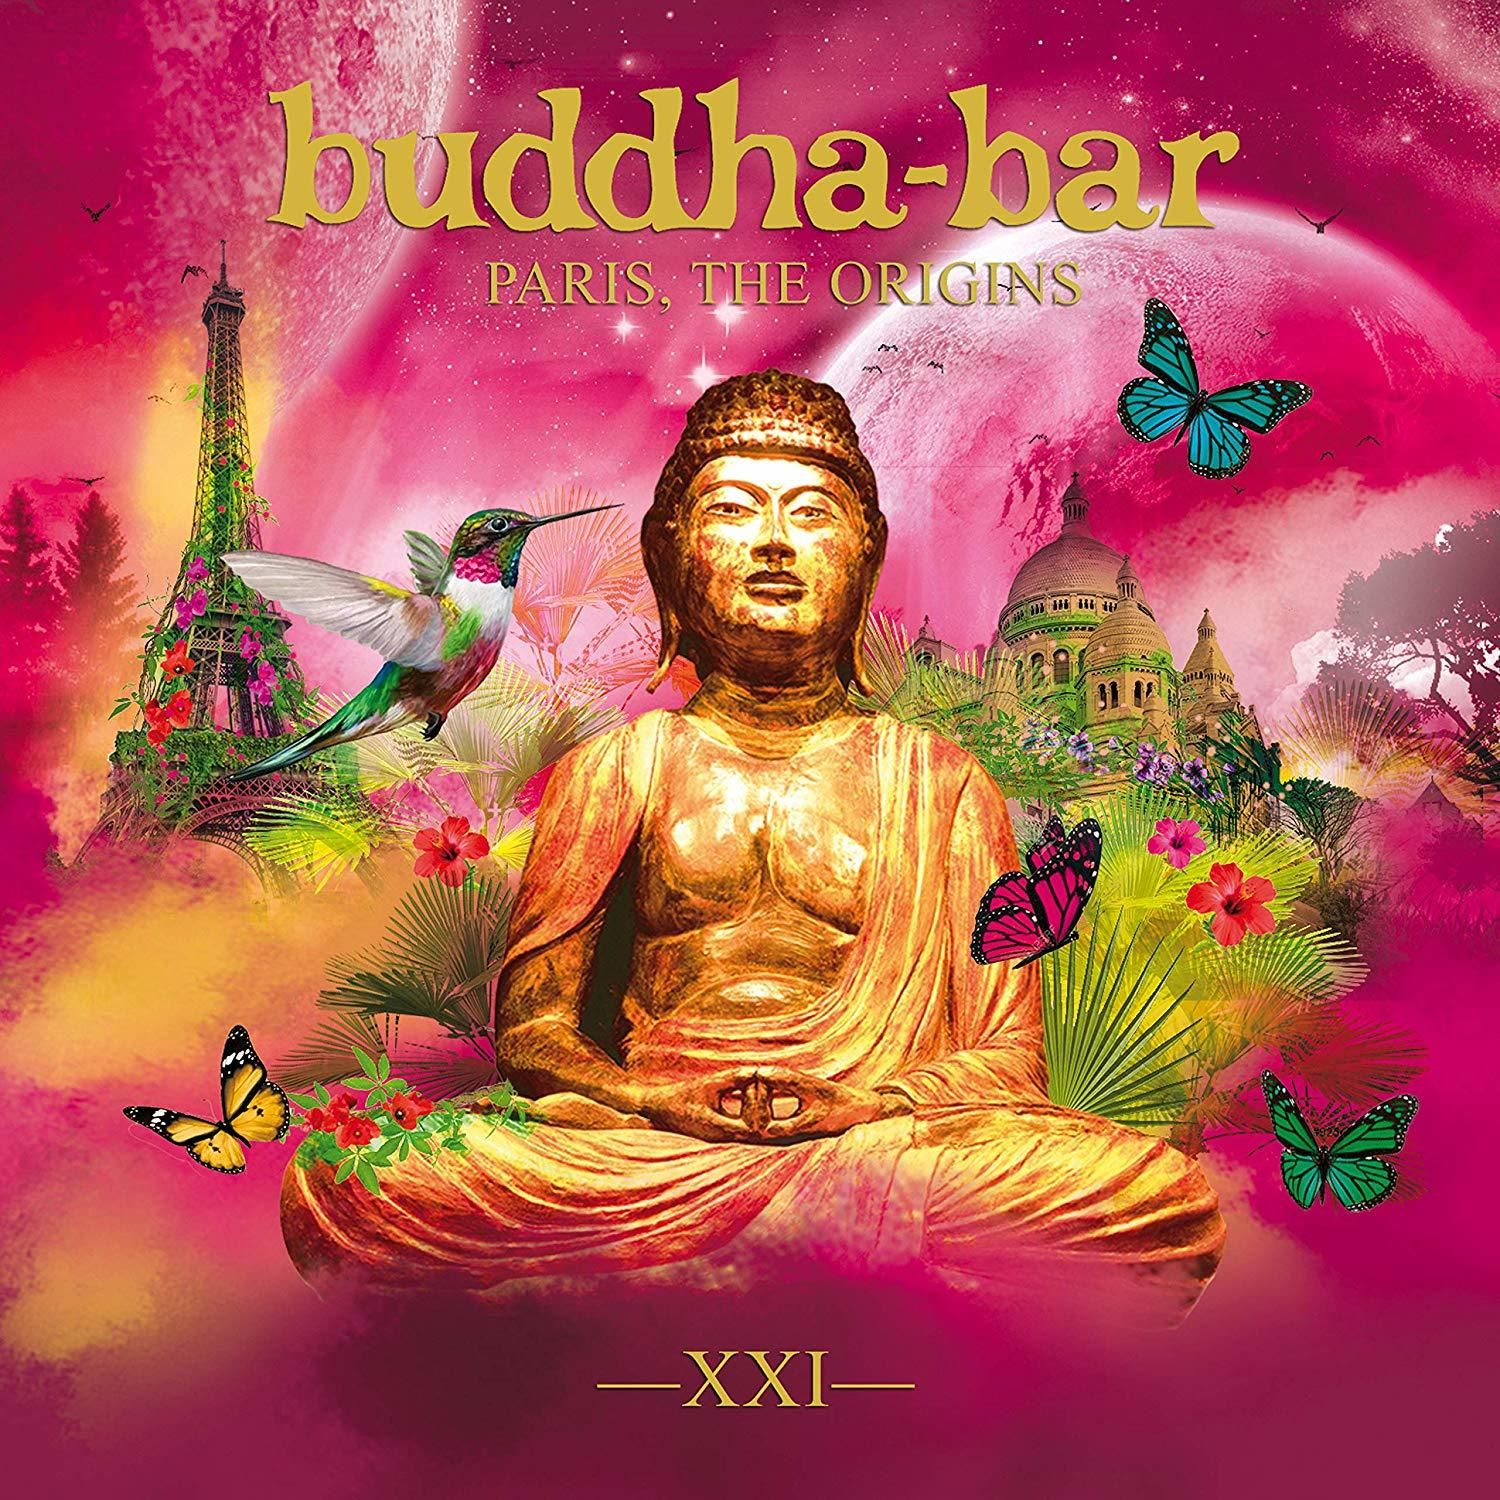 2019 two CD set. With millions of music compilations sold and venues openedthroughout the world, Buddha-Bar has set itself as the Lifestyle benchmark forZen & chic. After a hundred of compilations, several enchanting musictravels, it was about time to focus on the creation of the myth, the origins.Buddha-Bar XXI celebrates Buddha-Bar Paris and features the DJs that made thereputation of the venue, Ravin and Sam Popat – the legendary residents. DiscOne – Dinner – has been selected by Ravin, true